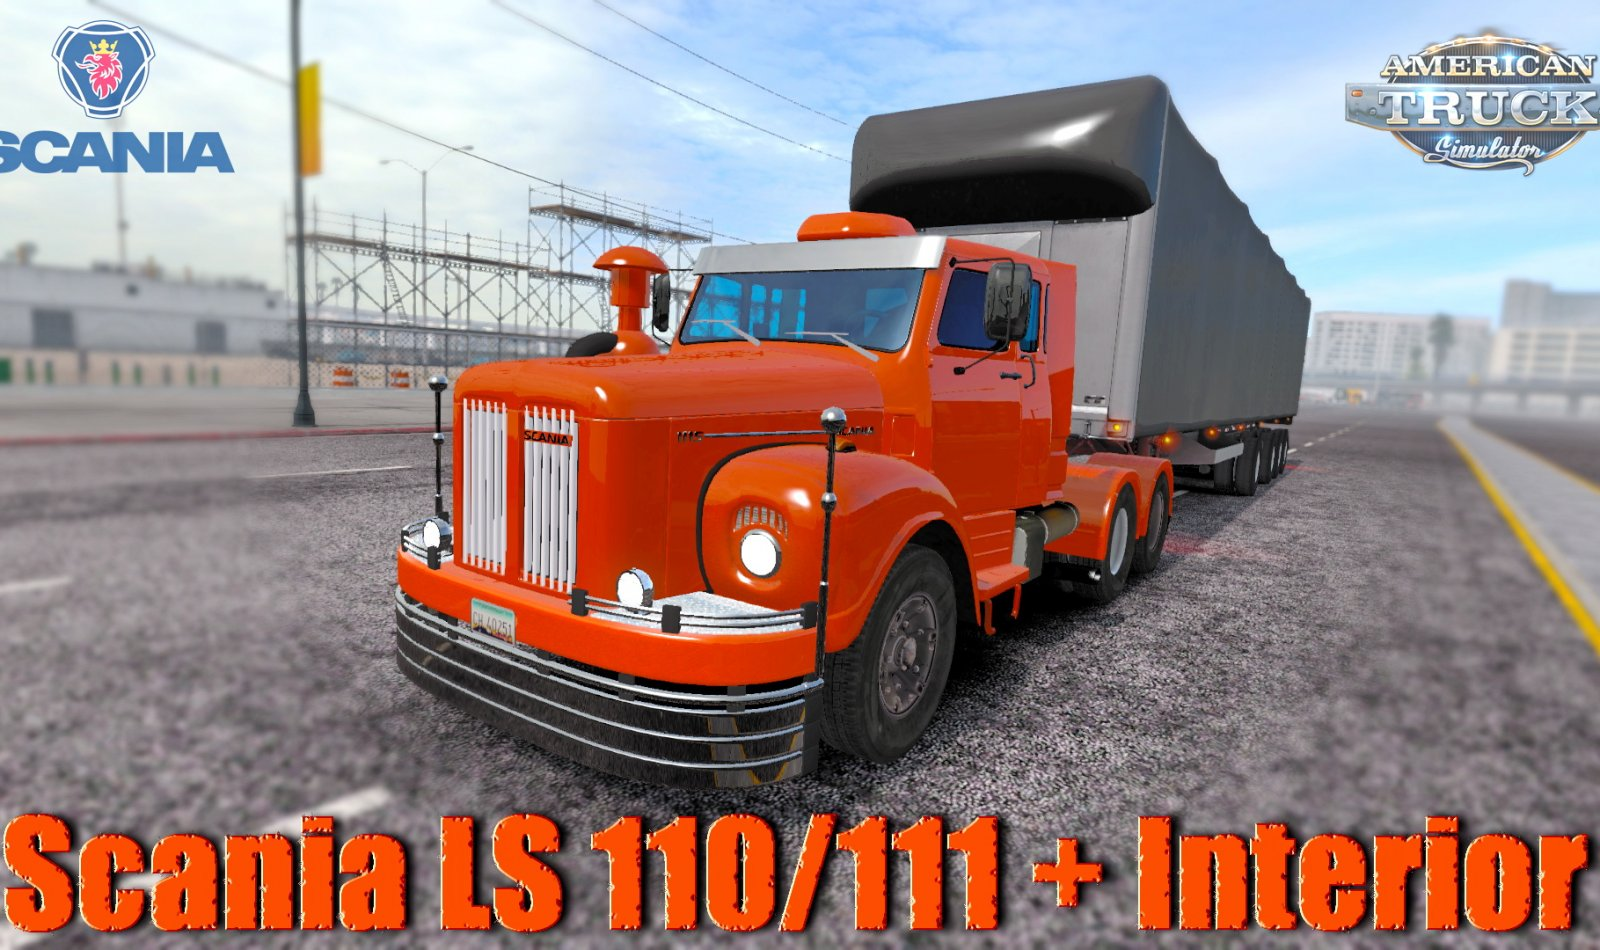 Scania LS 110/111 + Interior v2.0 by JbArtMods (1.35.x) for ATS